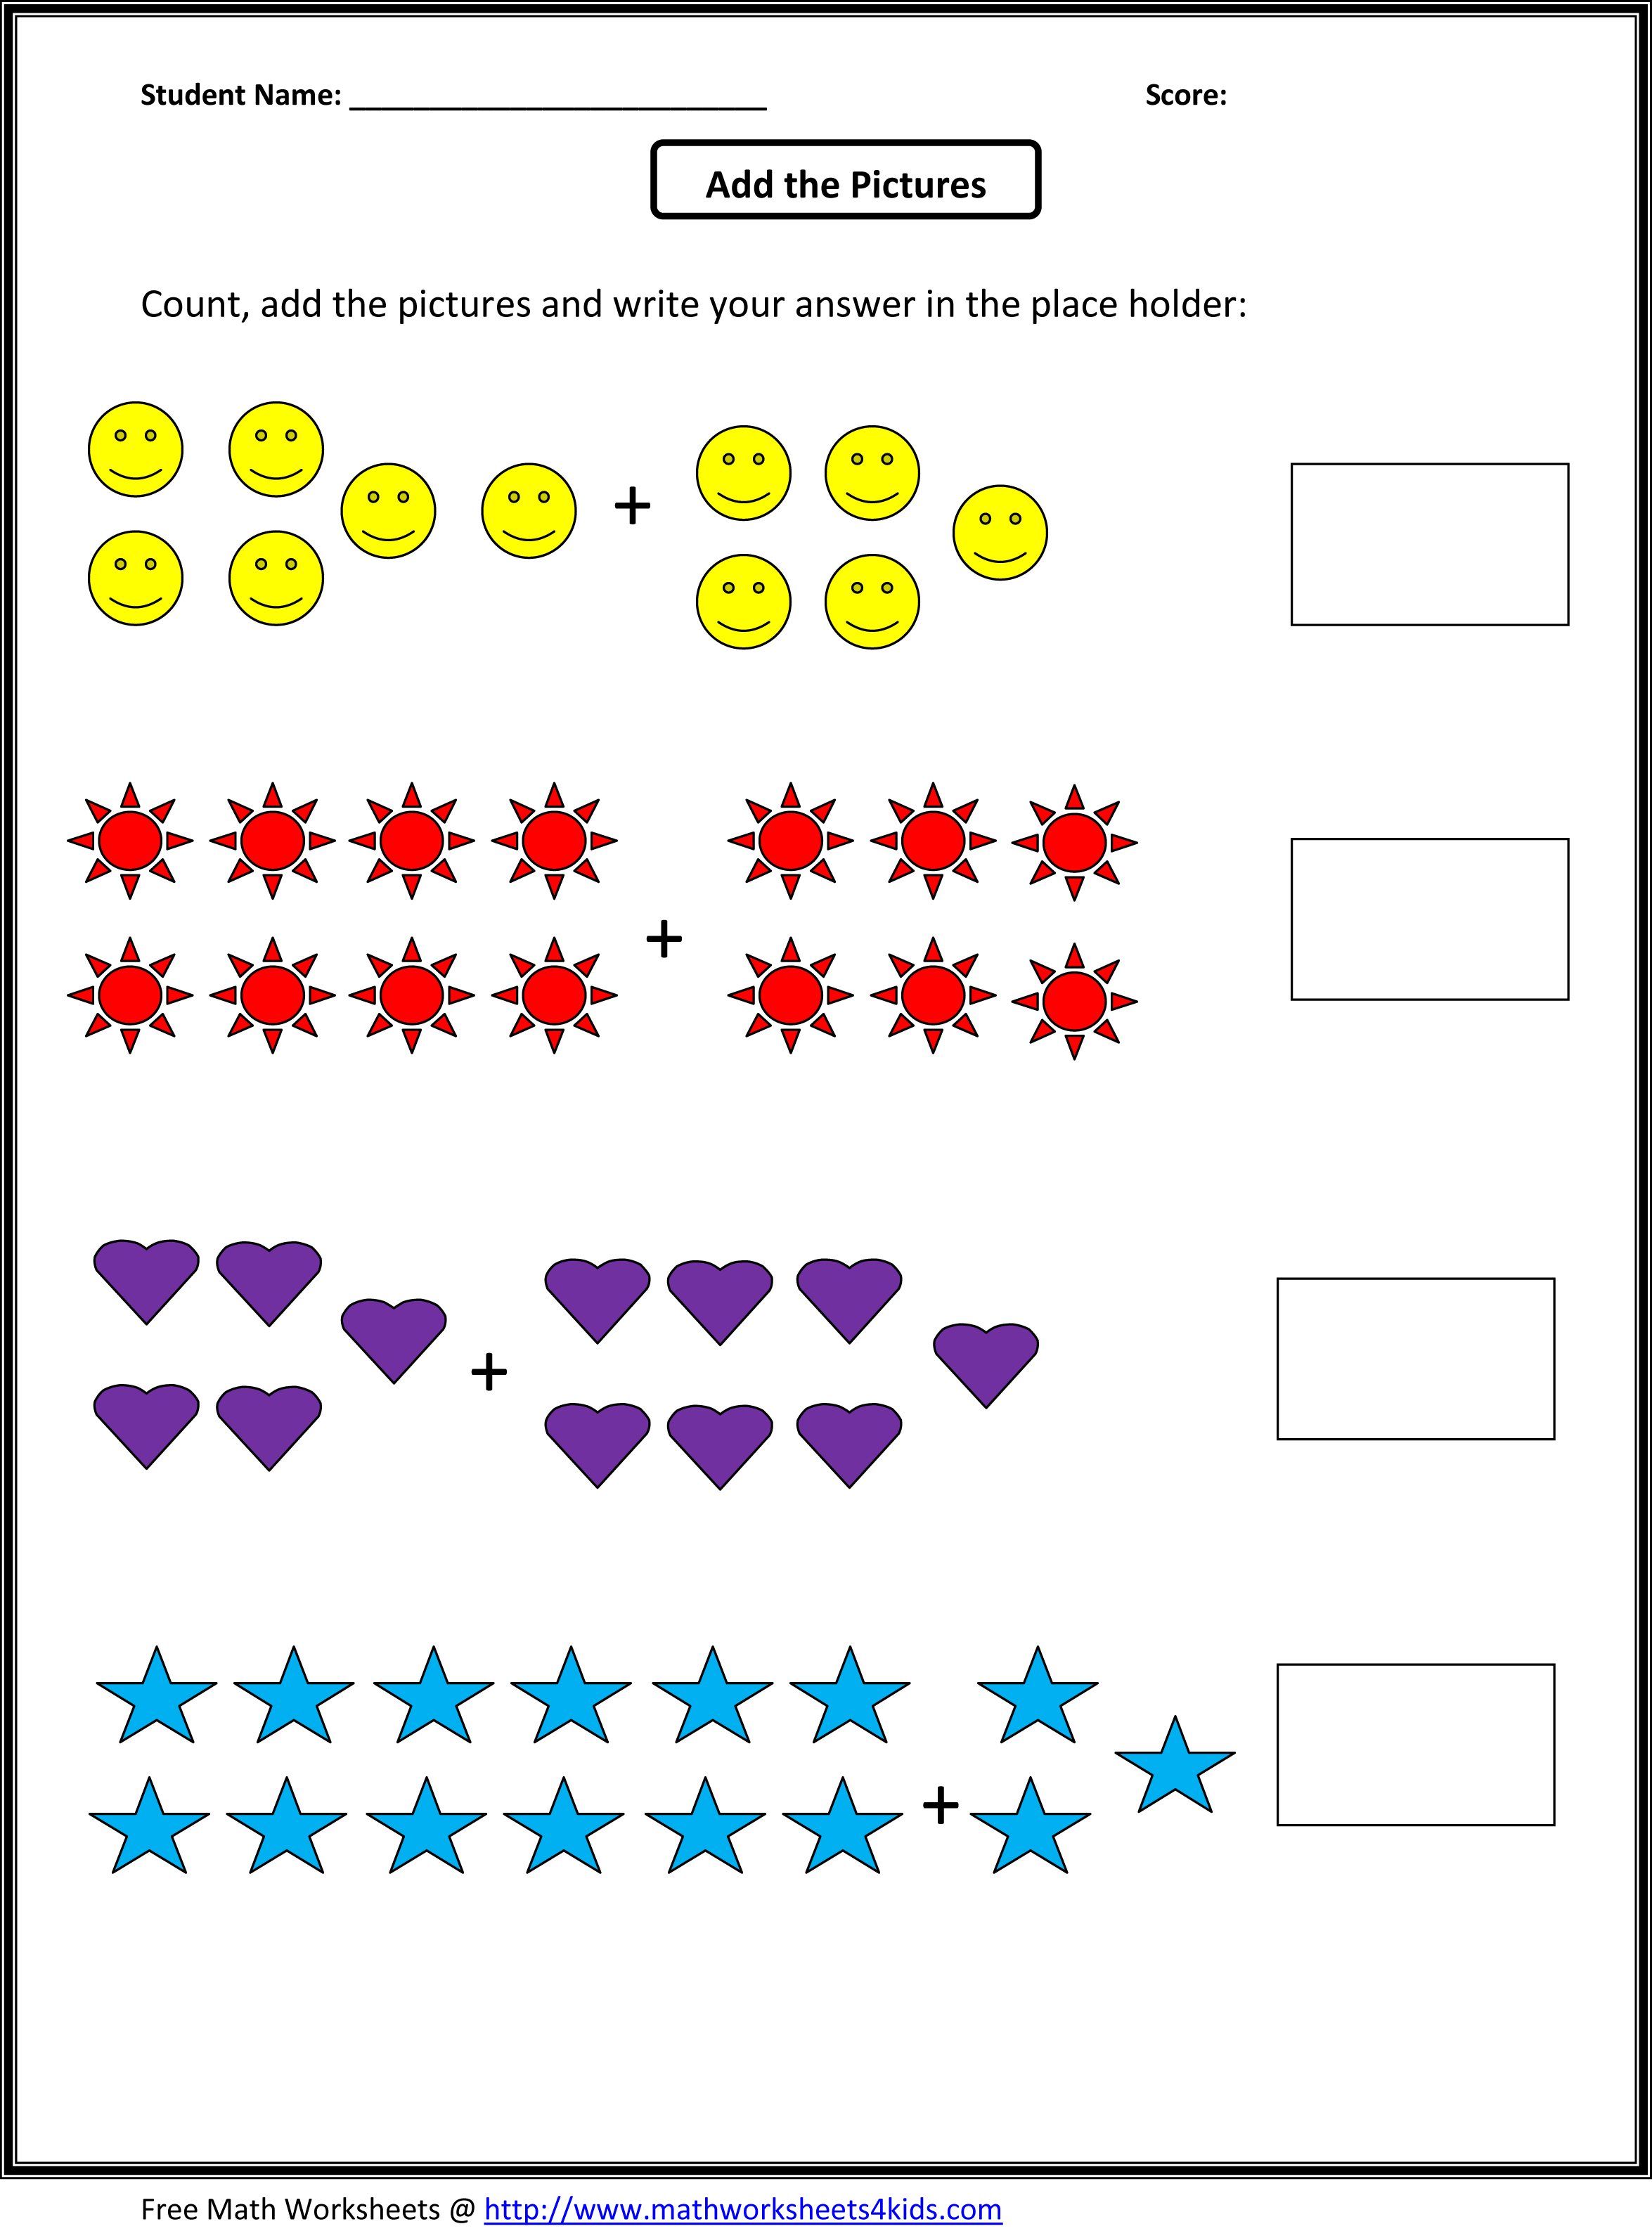 Aldiablosus  Terrific Grade  Maths Worksheet  Reocurent With Engaging Math Worksheets For St Grade Free  Reocurent With Astonishing Addition Worksheet Generator Also Worksheet Place In Addition Educational Worksheets And Cartoon Analysis Worksheet As Well As Significant Figures Worksheet Answers Additionally Place Value Worksheets Rd Grade From Reocurentcom With Aldiablosus  Engaging Grade  Maths Worksheet  Reocurent With Astonishing Math Worksheets For St Grade Free  Reocurent And Terrific Addition Worksheet Generator Also Worksheet Place In Addition Educational Worksheets From Reocurentcom